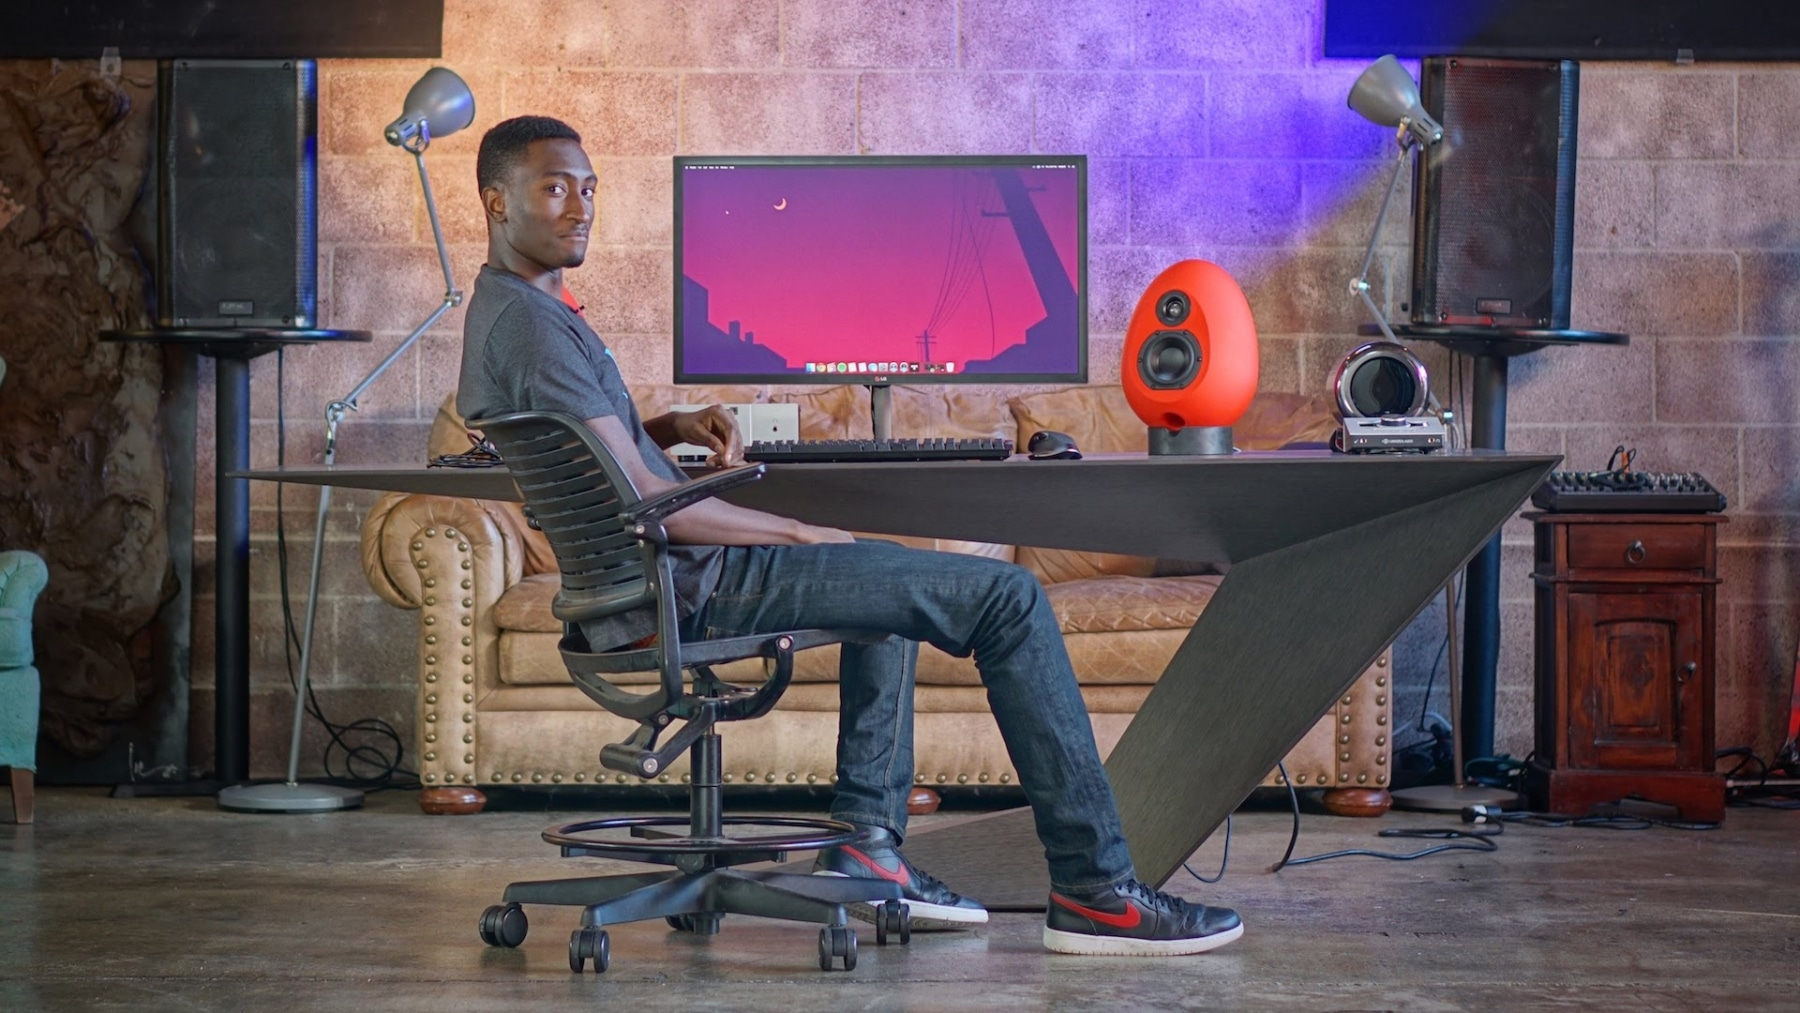 Geared Up Mkbhd S Desk Setup Amp Gear Man Of Many